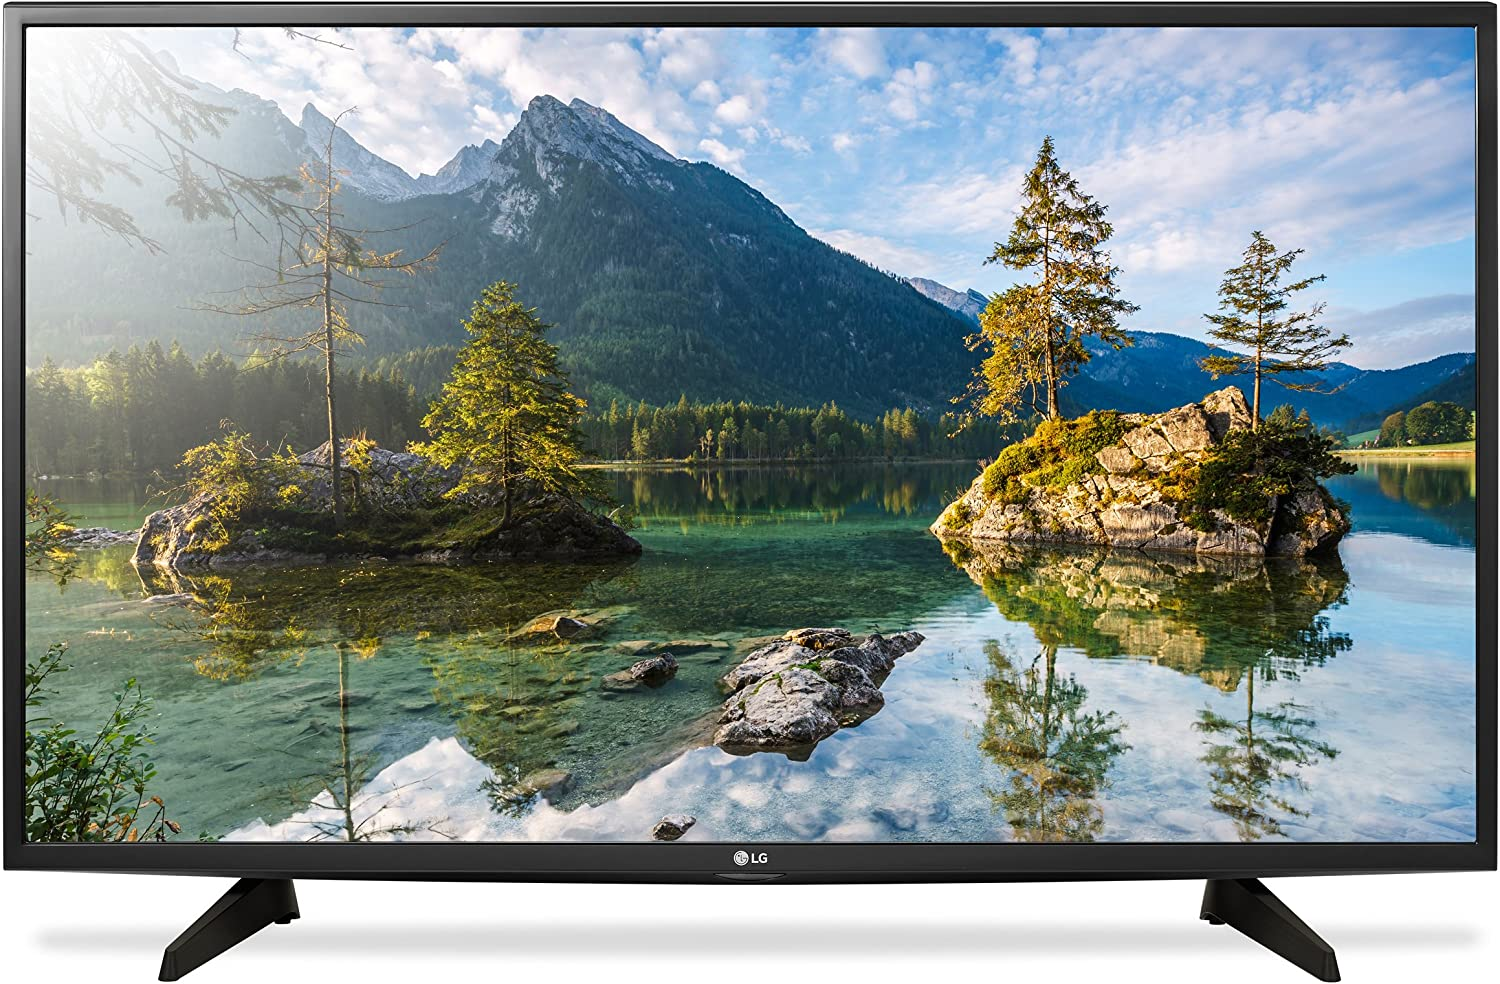 Lg 49Lk5100Pla Batidora TV Led Full HD, 124 Cm (49 Pulgadas) con Sonido Virtual Surround 2.0, USB Y Hdmi: 343.64: Amazon.es: Electrónica